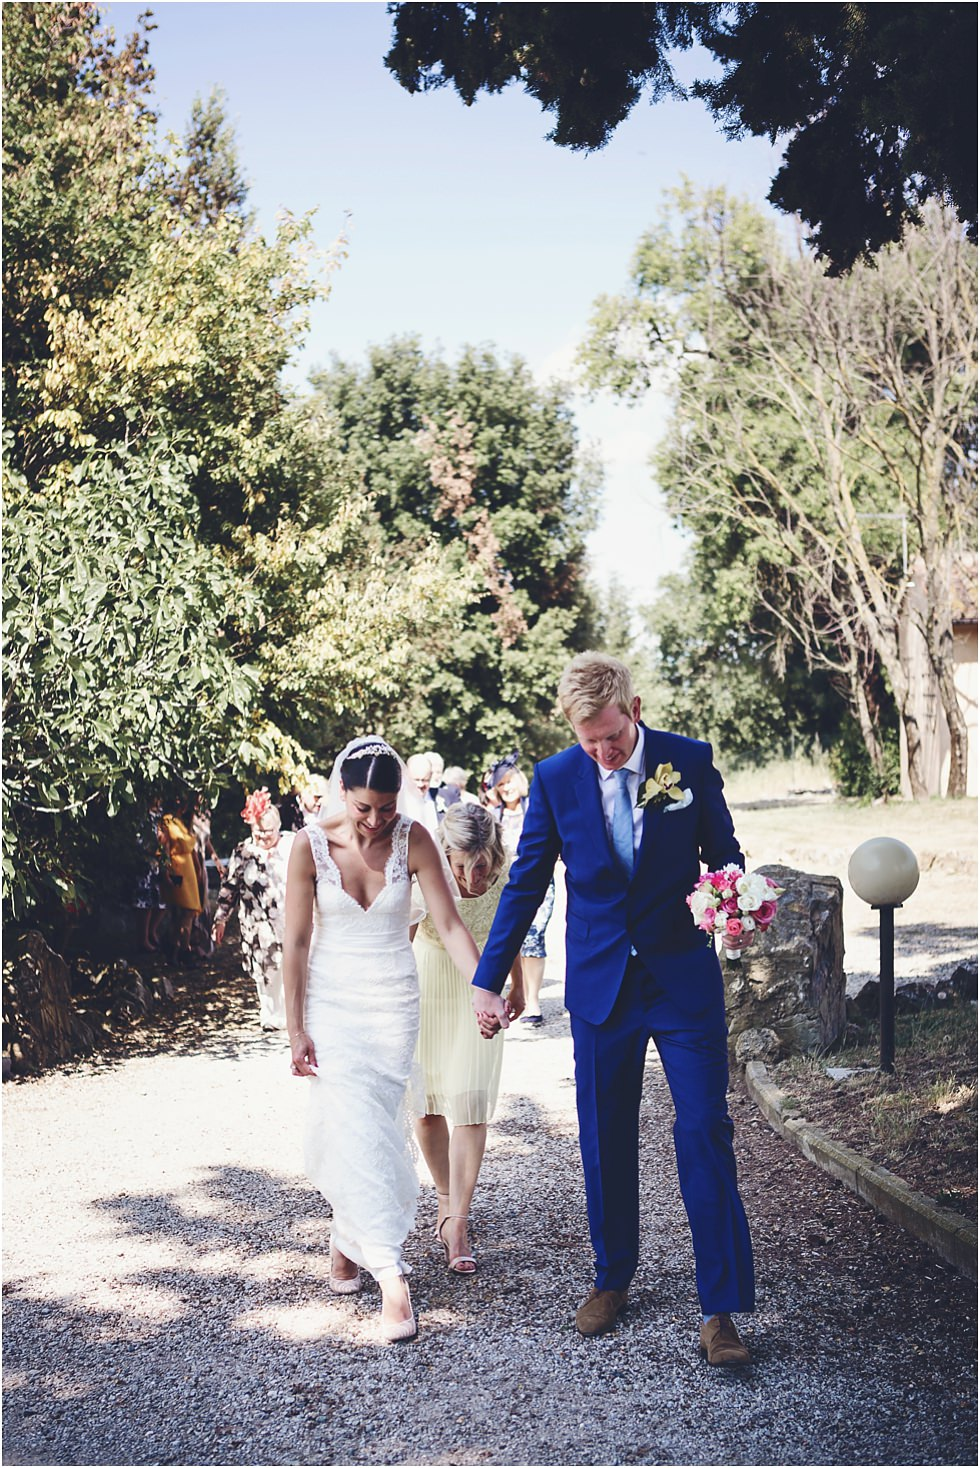 Cristina Rossi Photography Destination Wedding Italy_1270